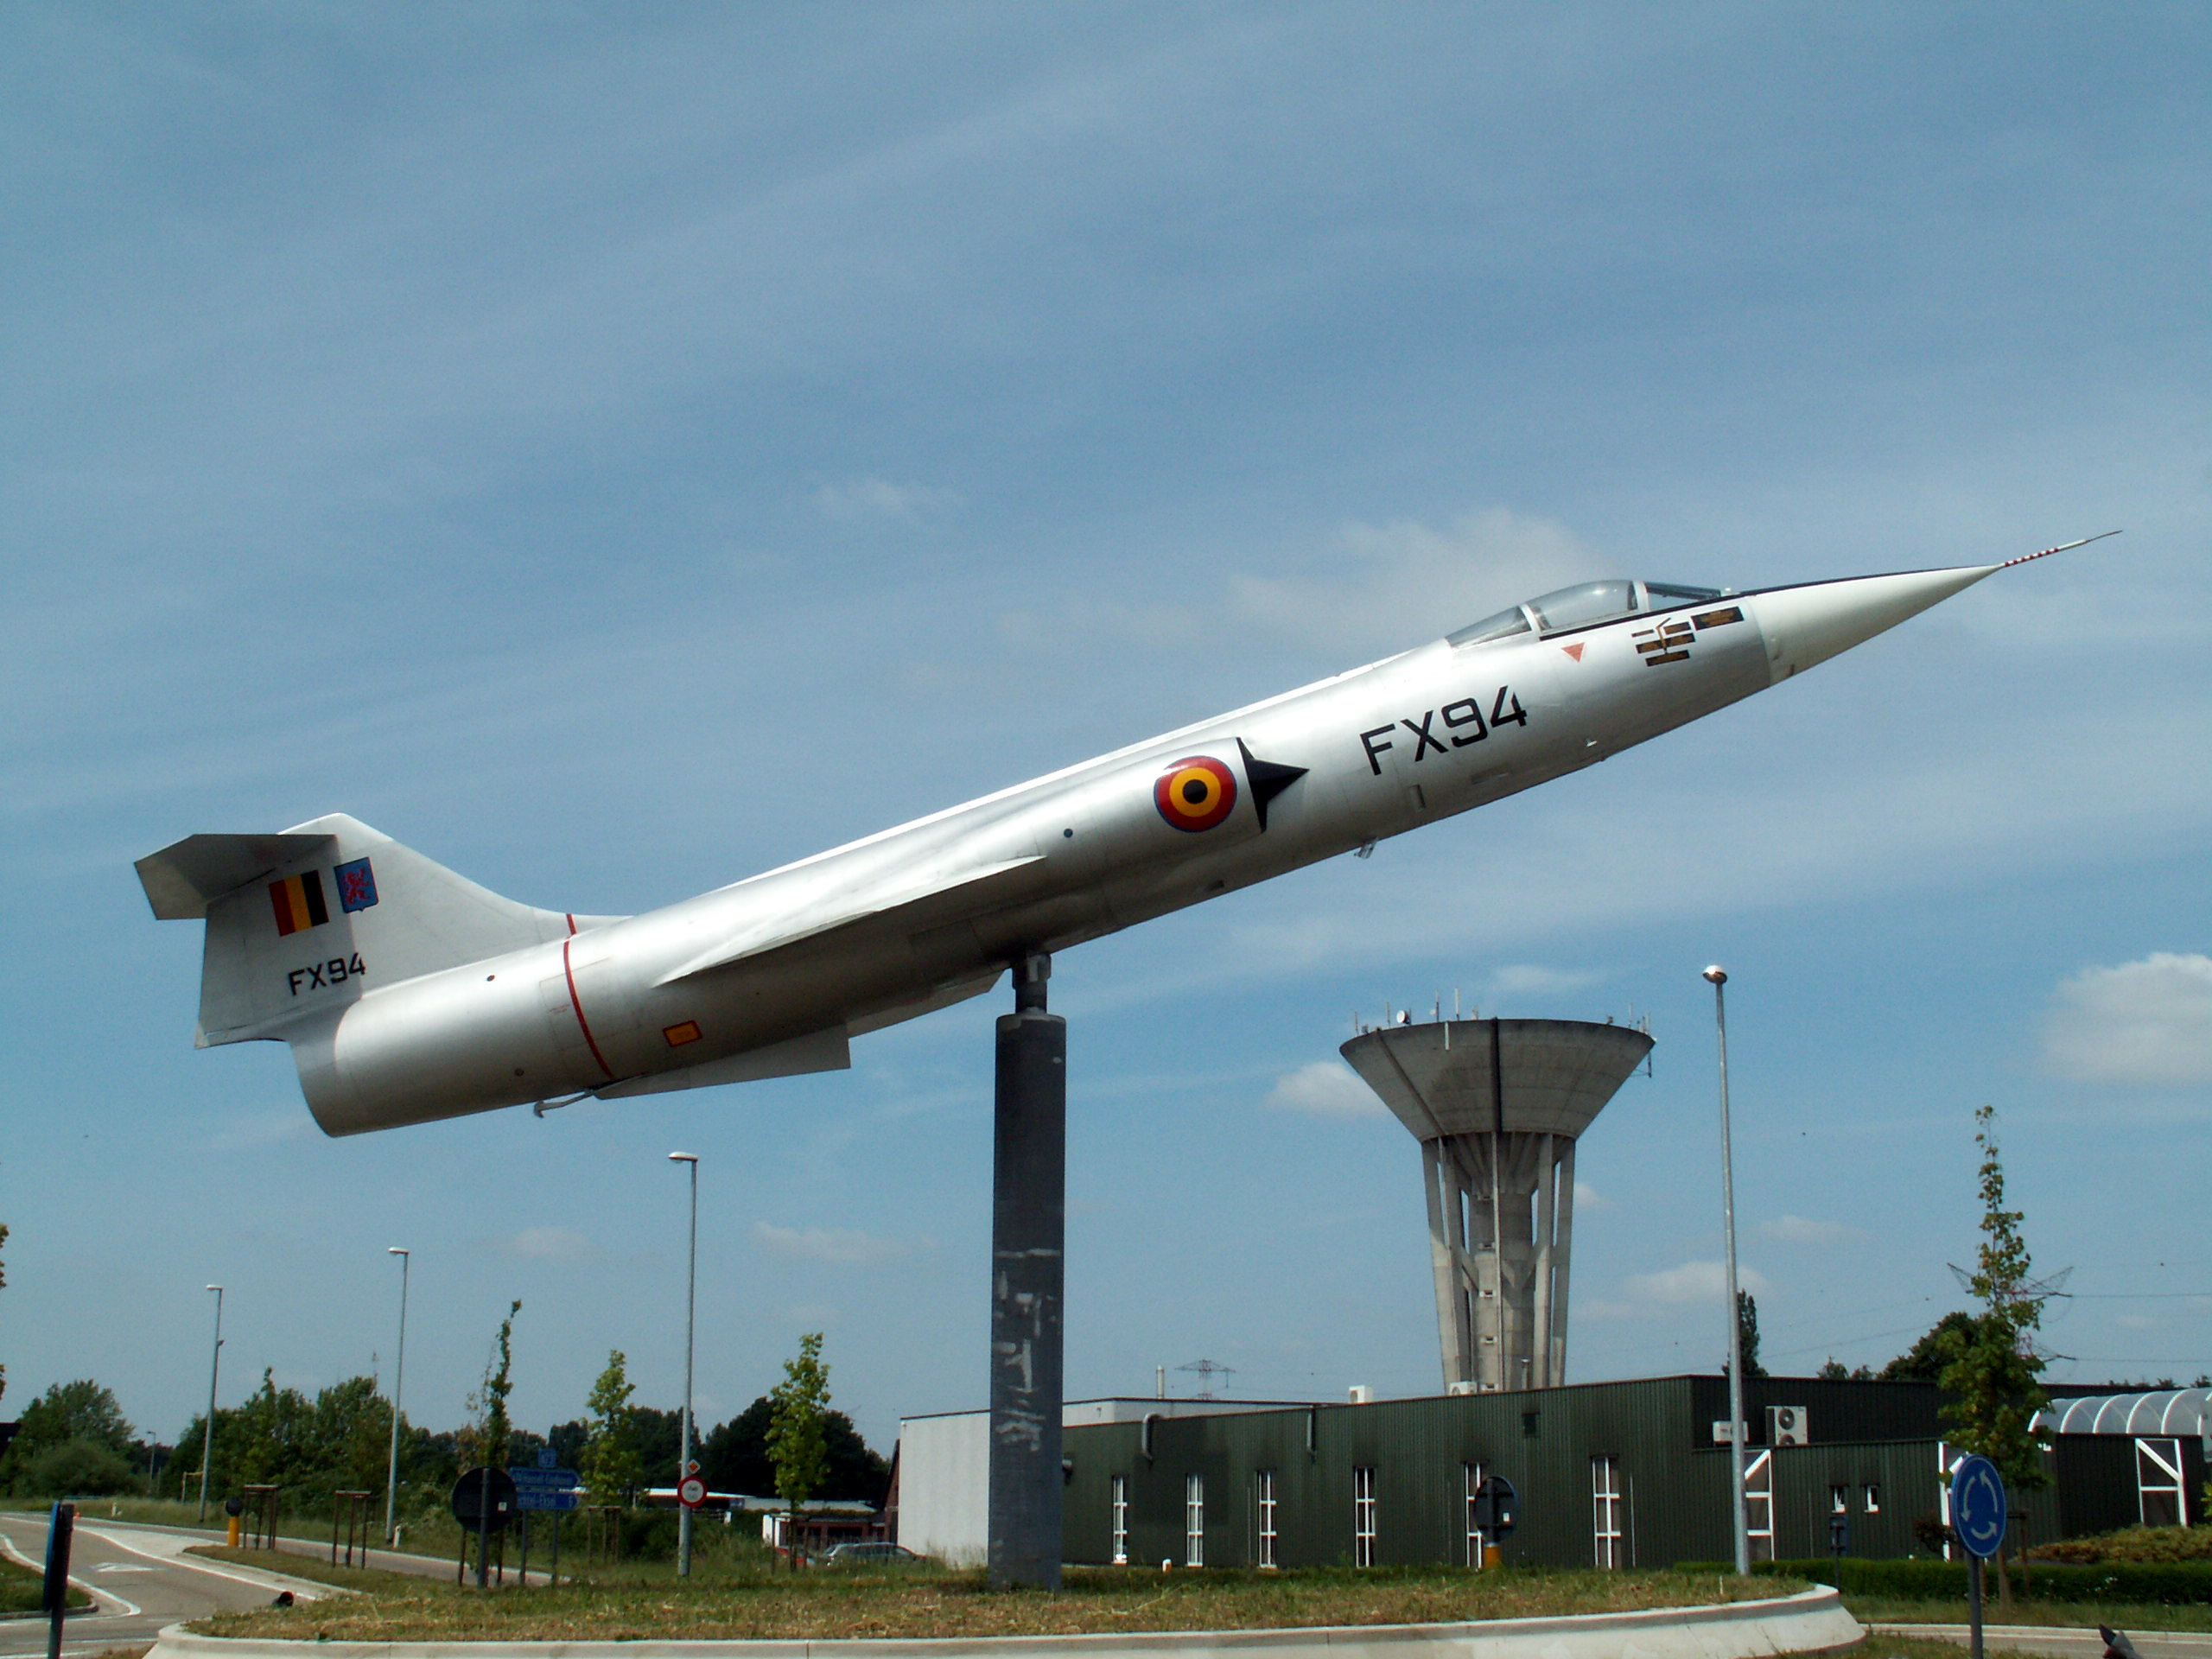 Image of Lockheed F-104 Starfighter